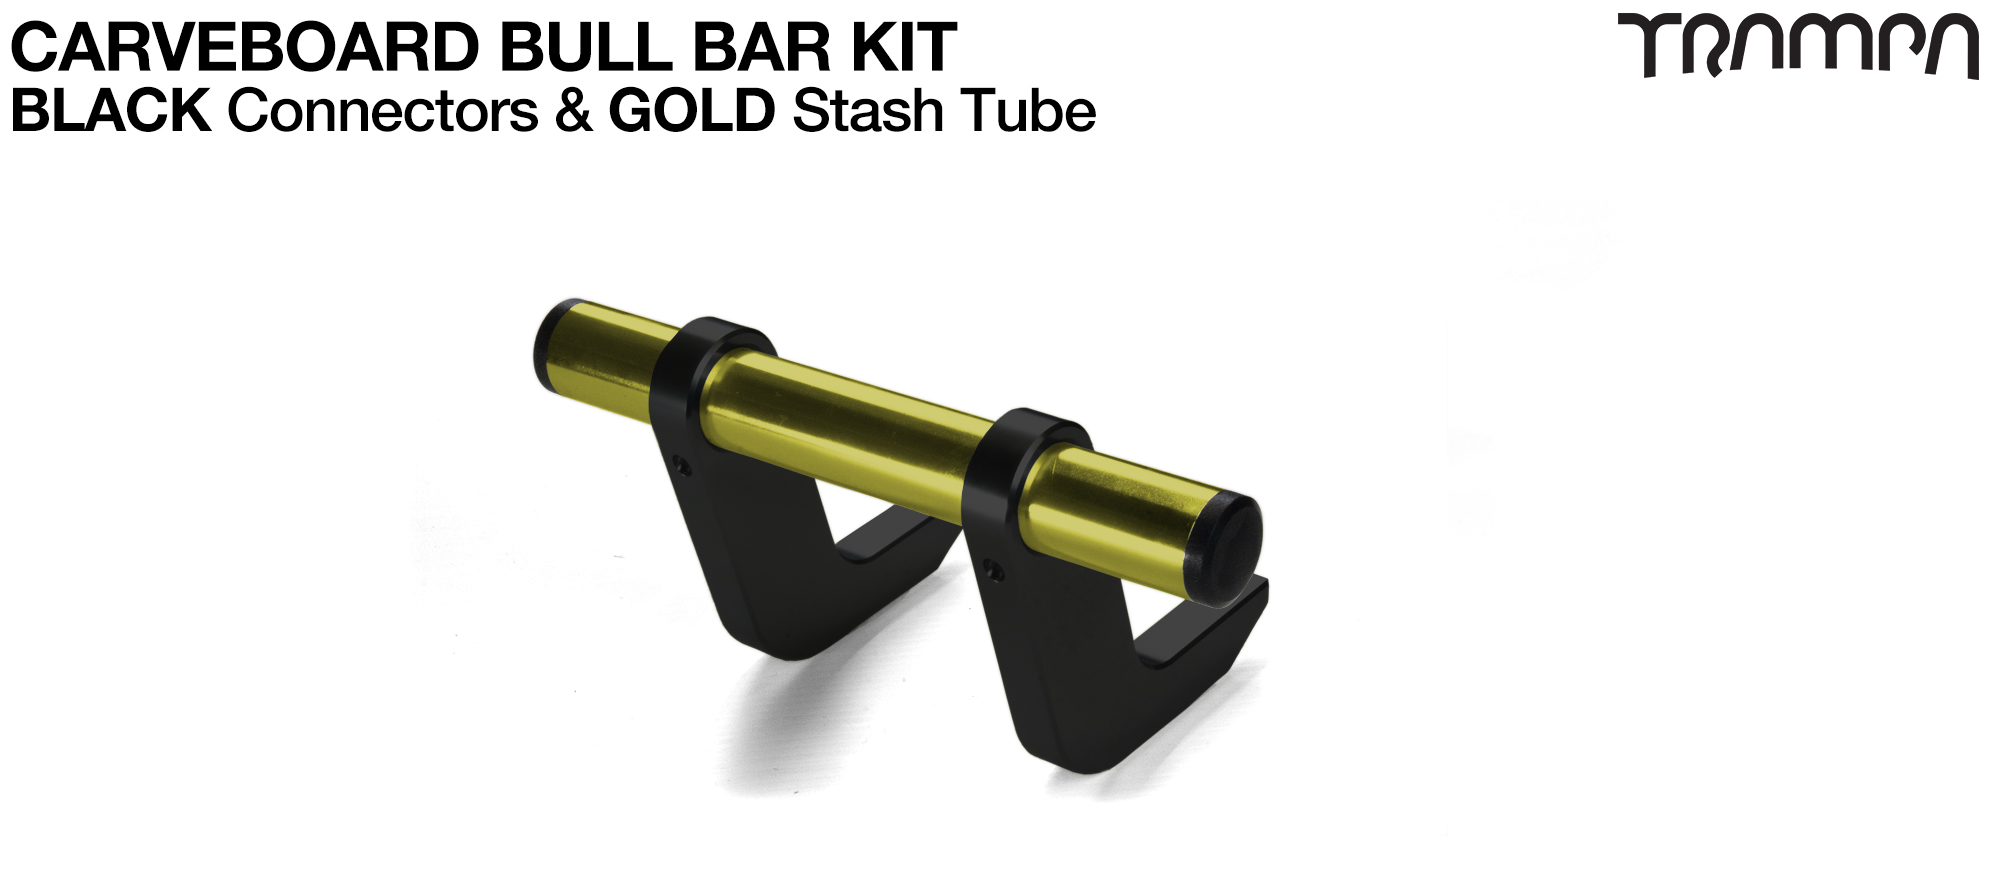 BLACK Uprights & GOLD Crossbar BULL BARS for CARVE BOARDS using T6 Heat Treated CNC'd AluminIum Clamps, Hollow Aluminium Stash Tubes with Rubber end bungs